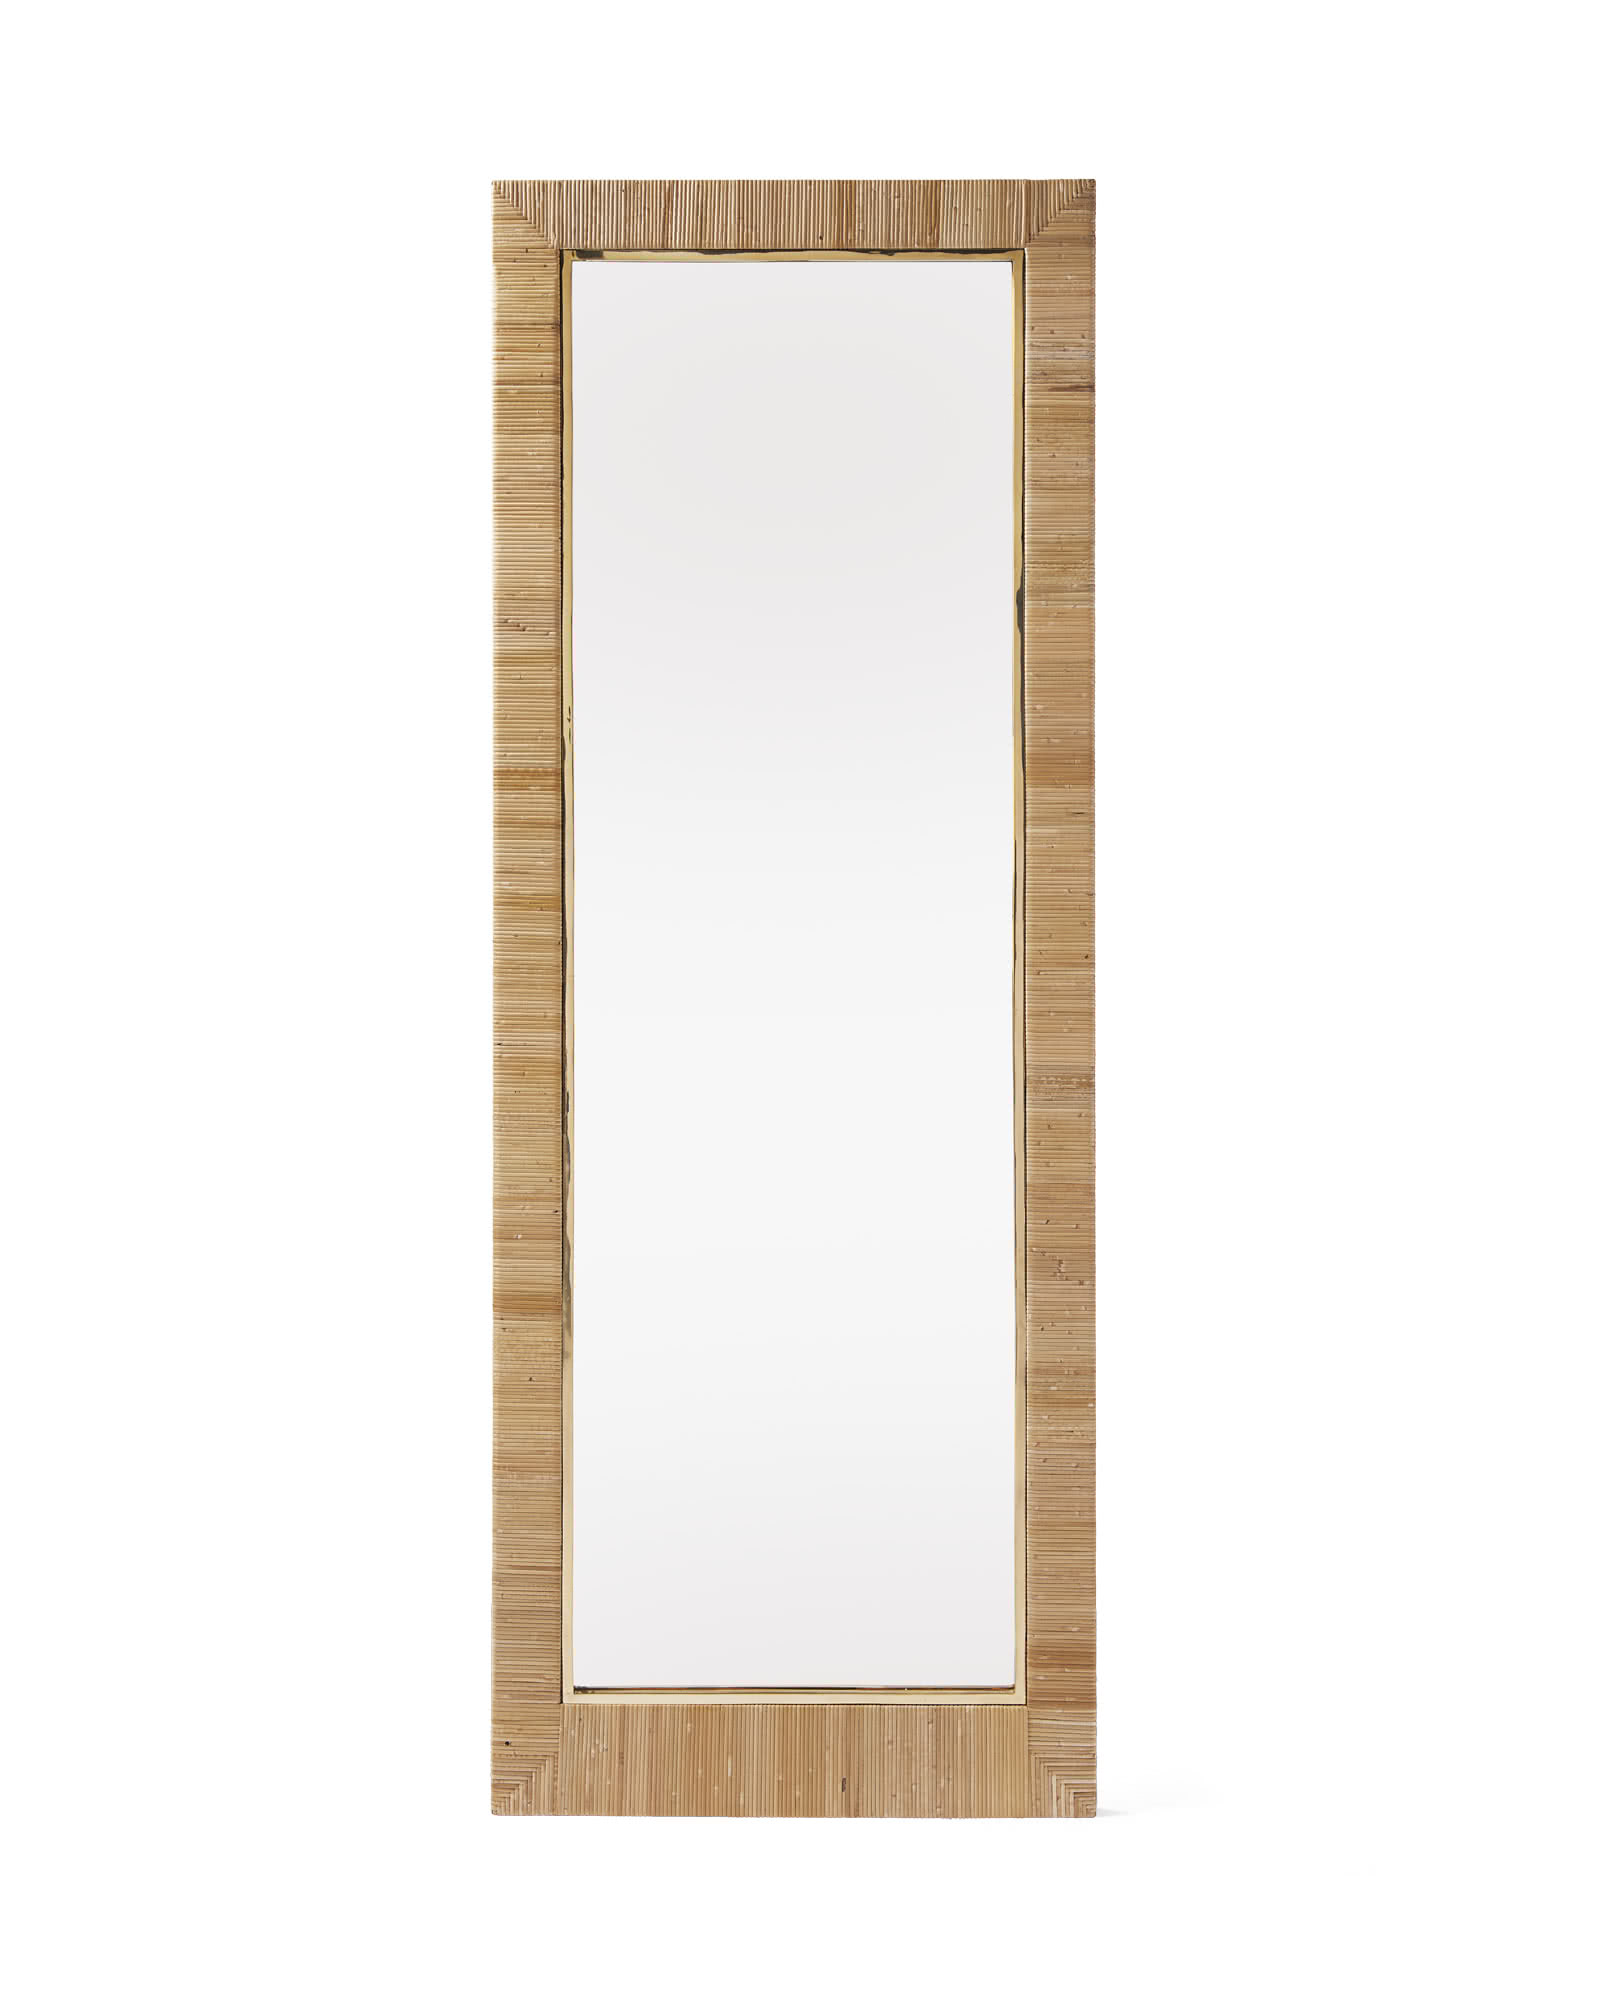 Balboa Floor Mirror, Natural